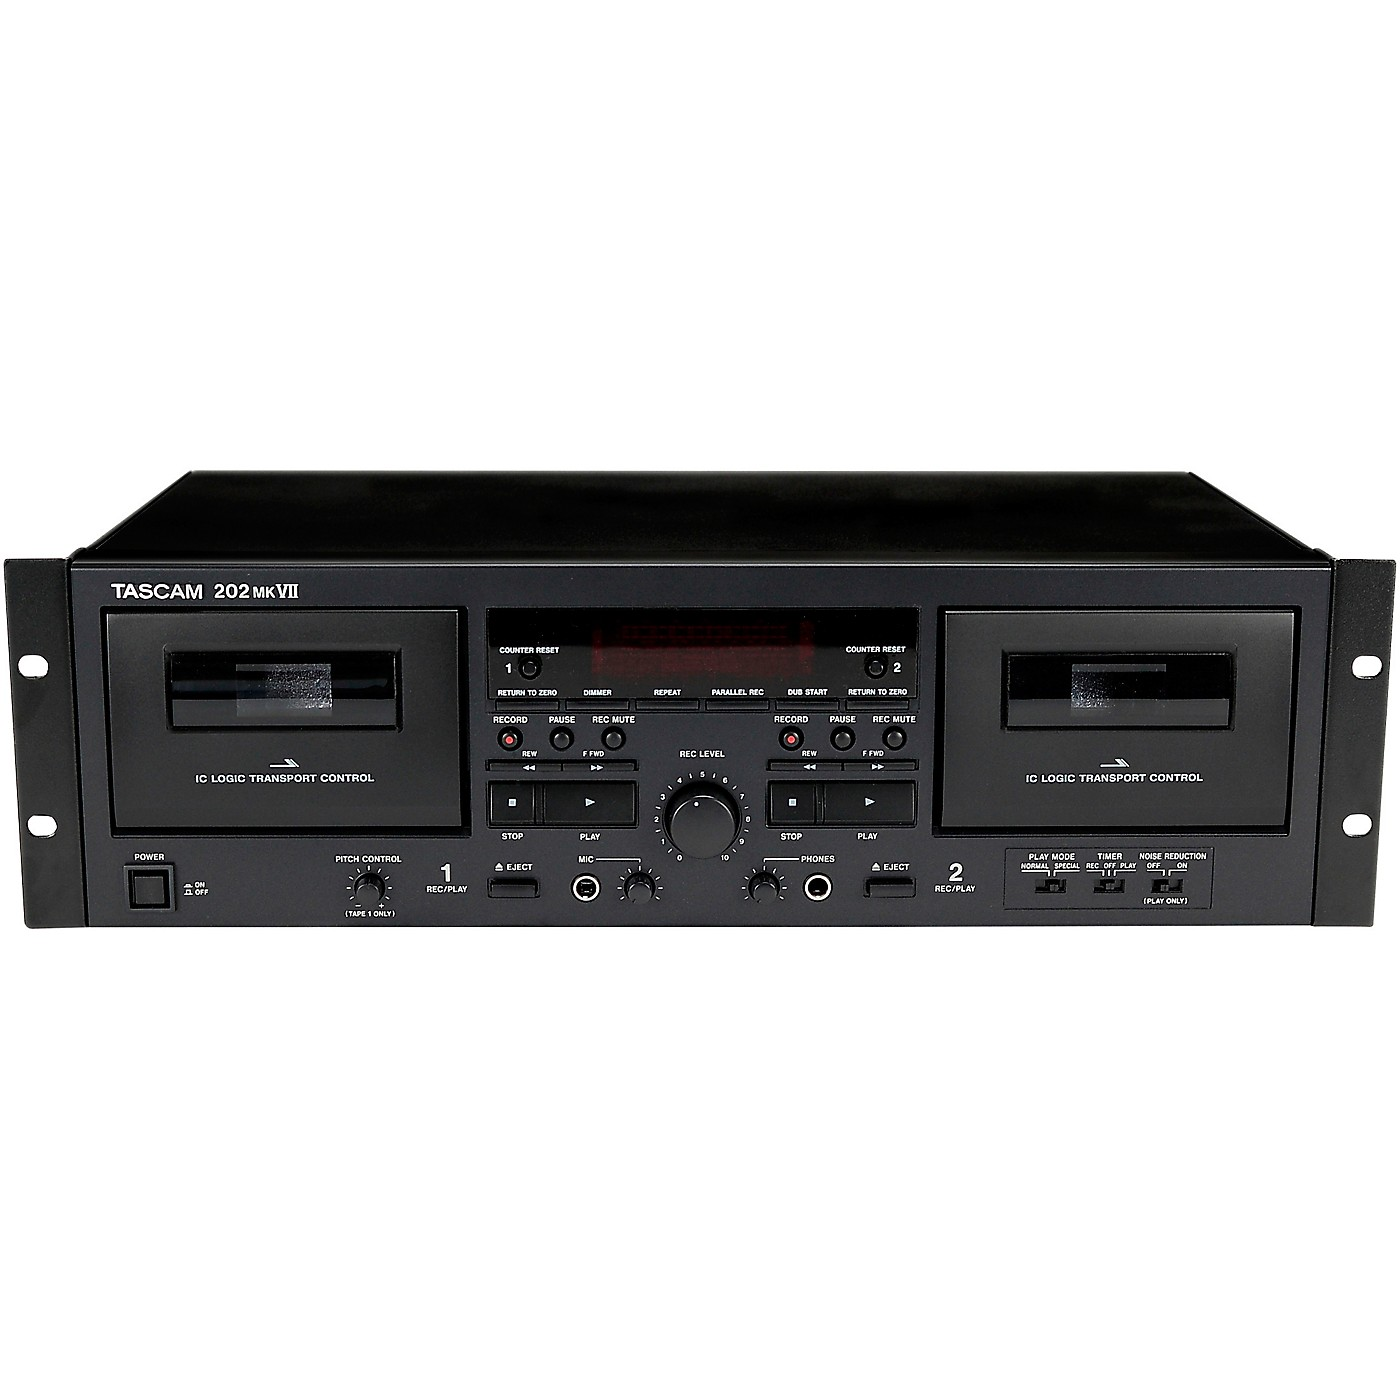 Tascam 202MKVII Double Cassette Deck With USB Port thumbnail